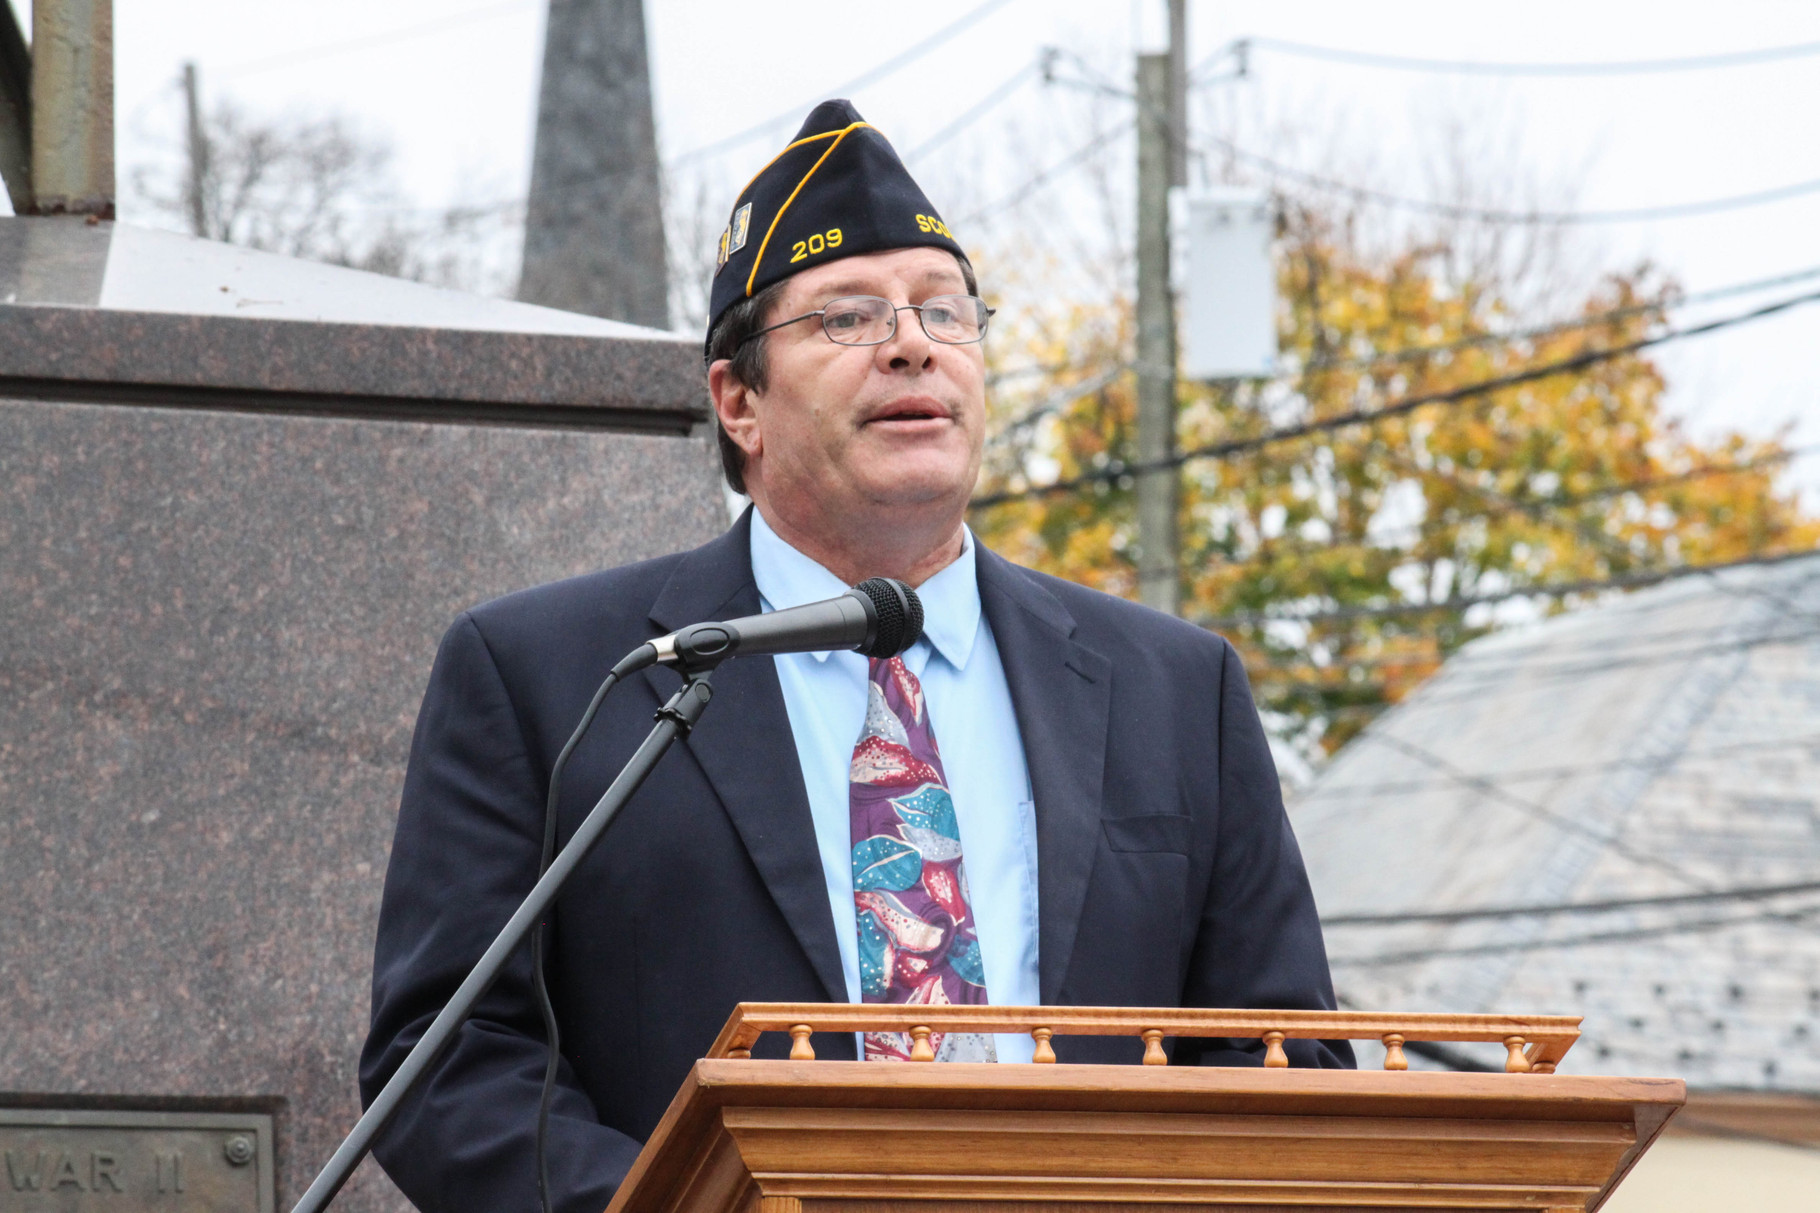 Kevin Burns of American Legion Post 209 commends Veterans of Scotch Plains